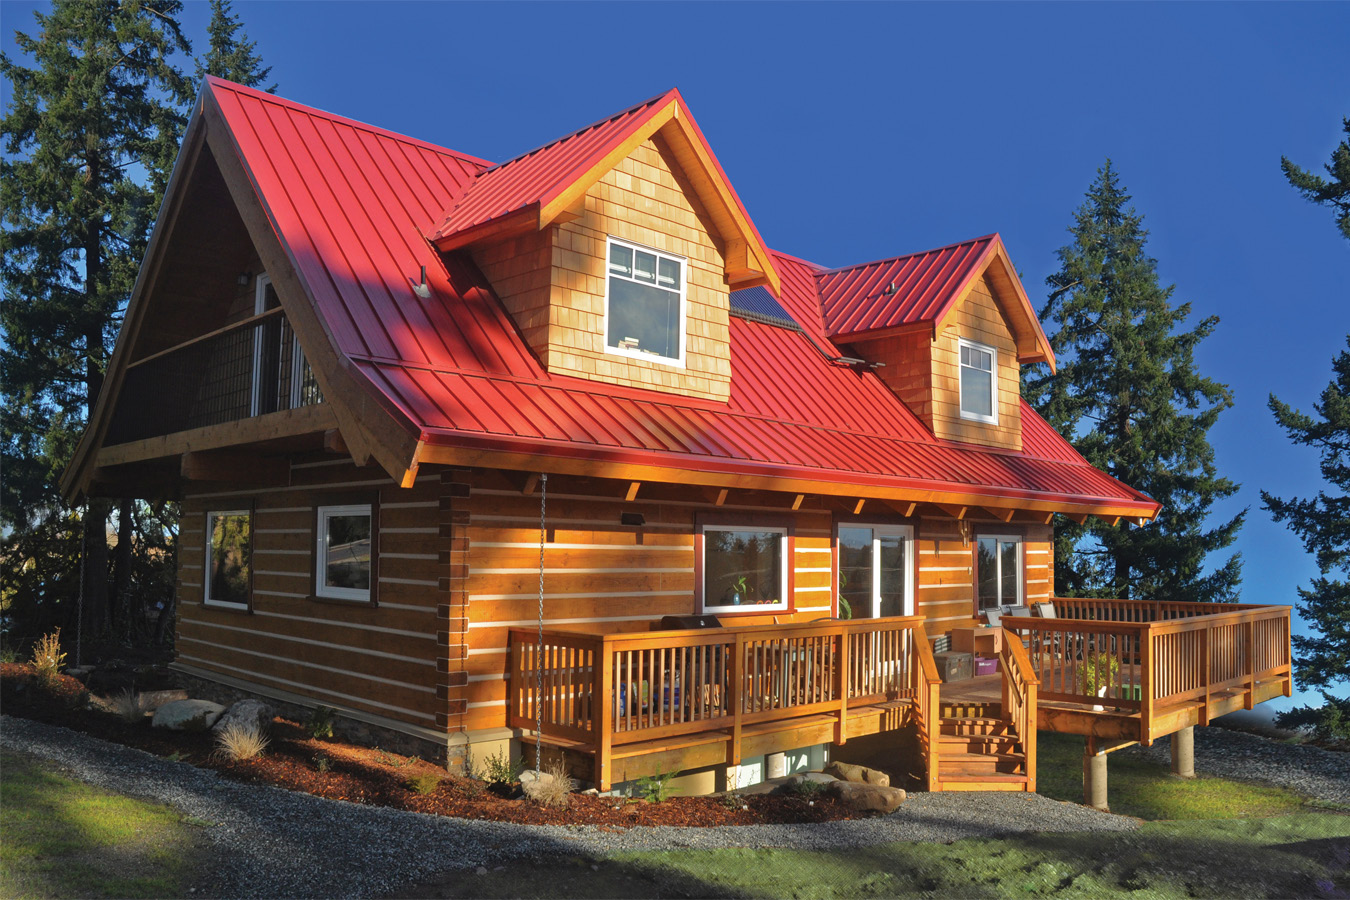 Affordable log homes cottages and cabins from vancouver for Energy efficient kit homes